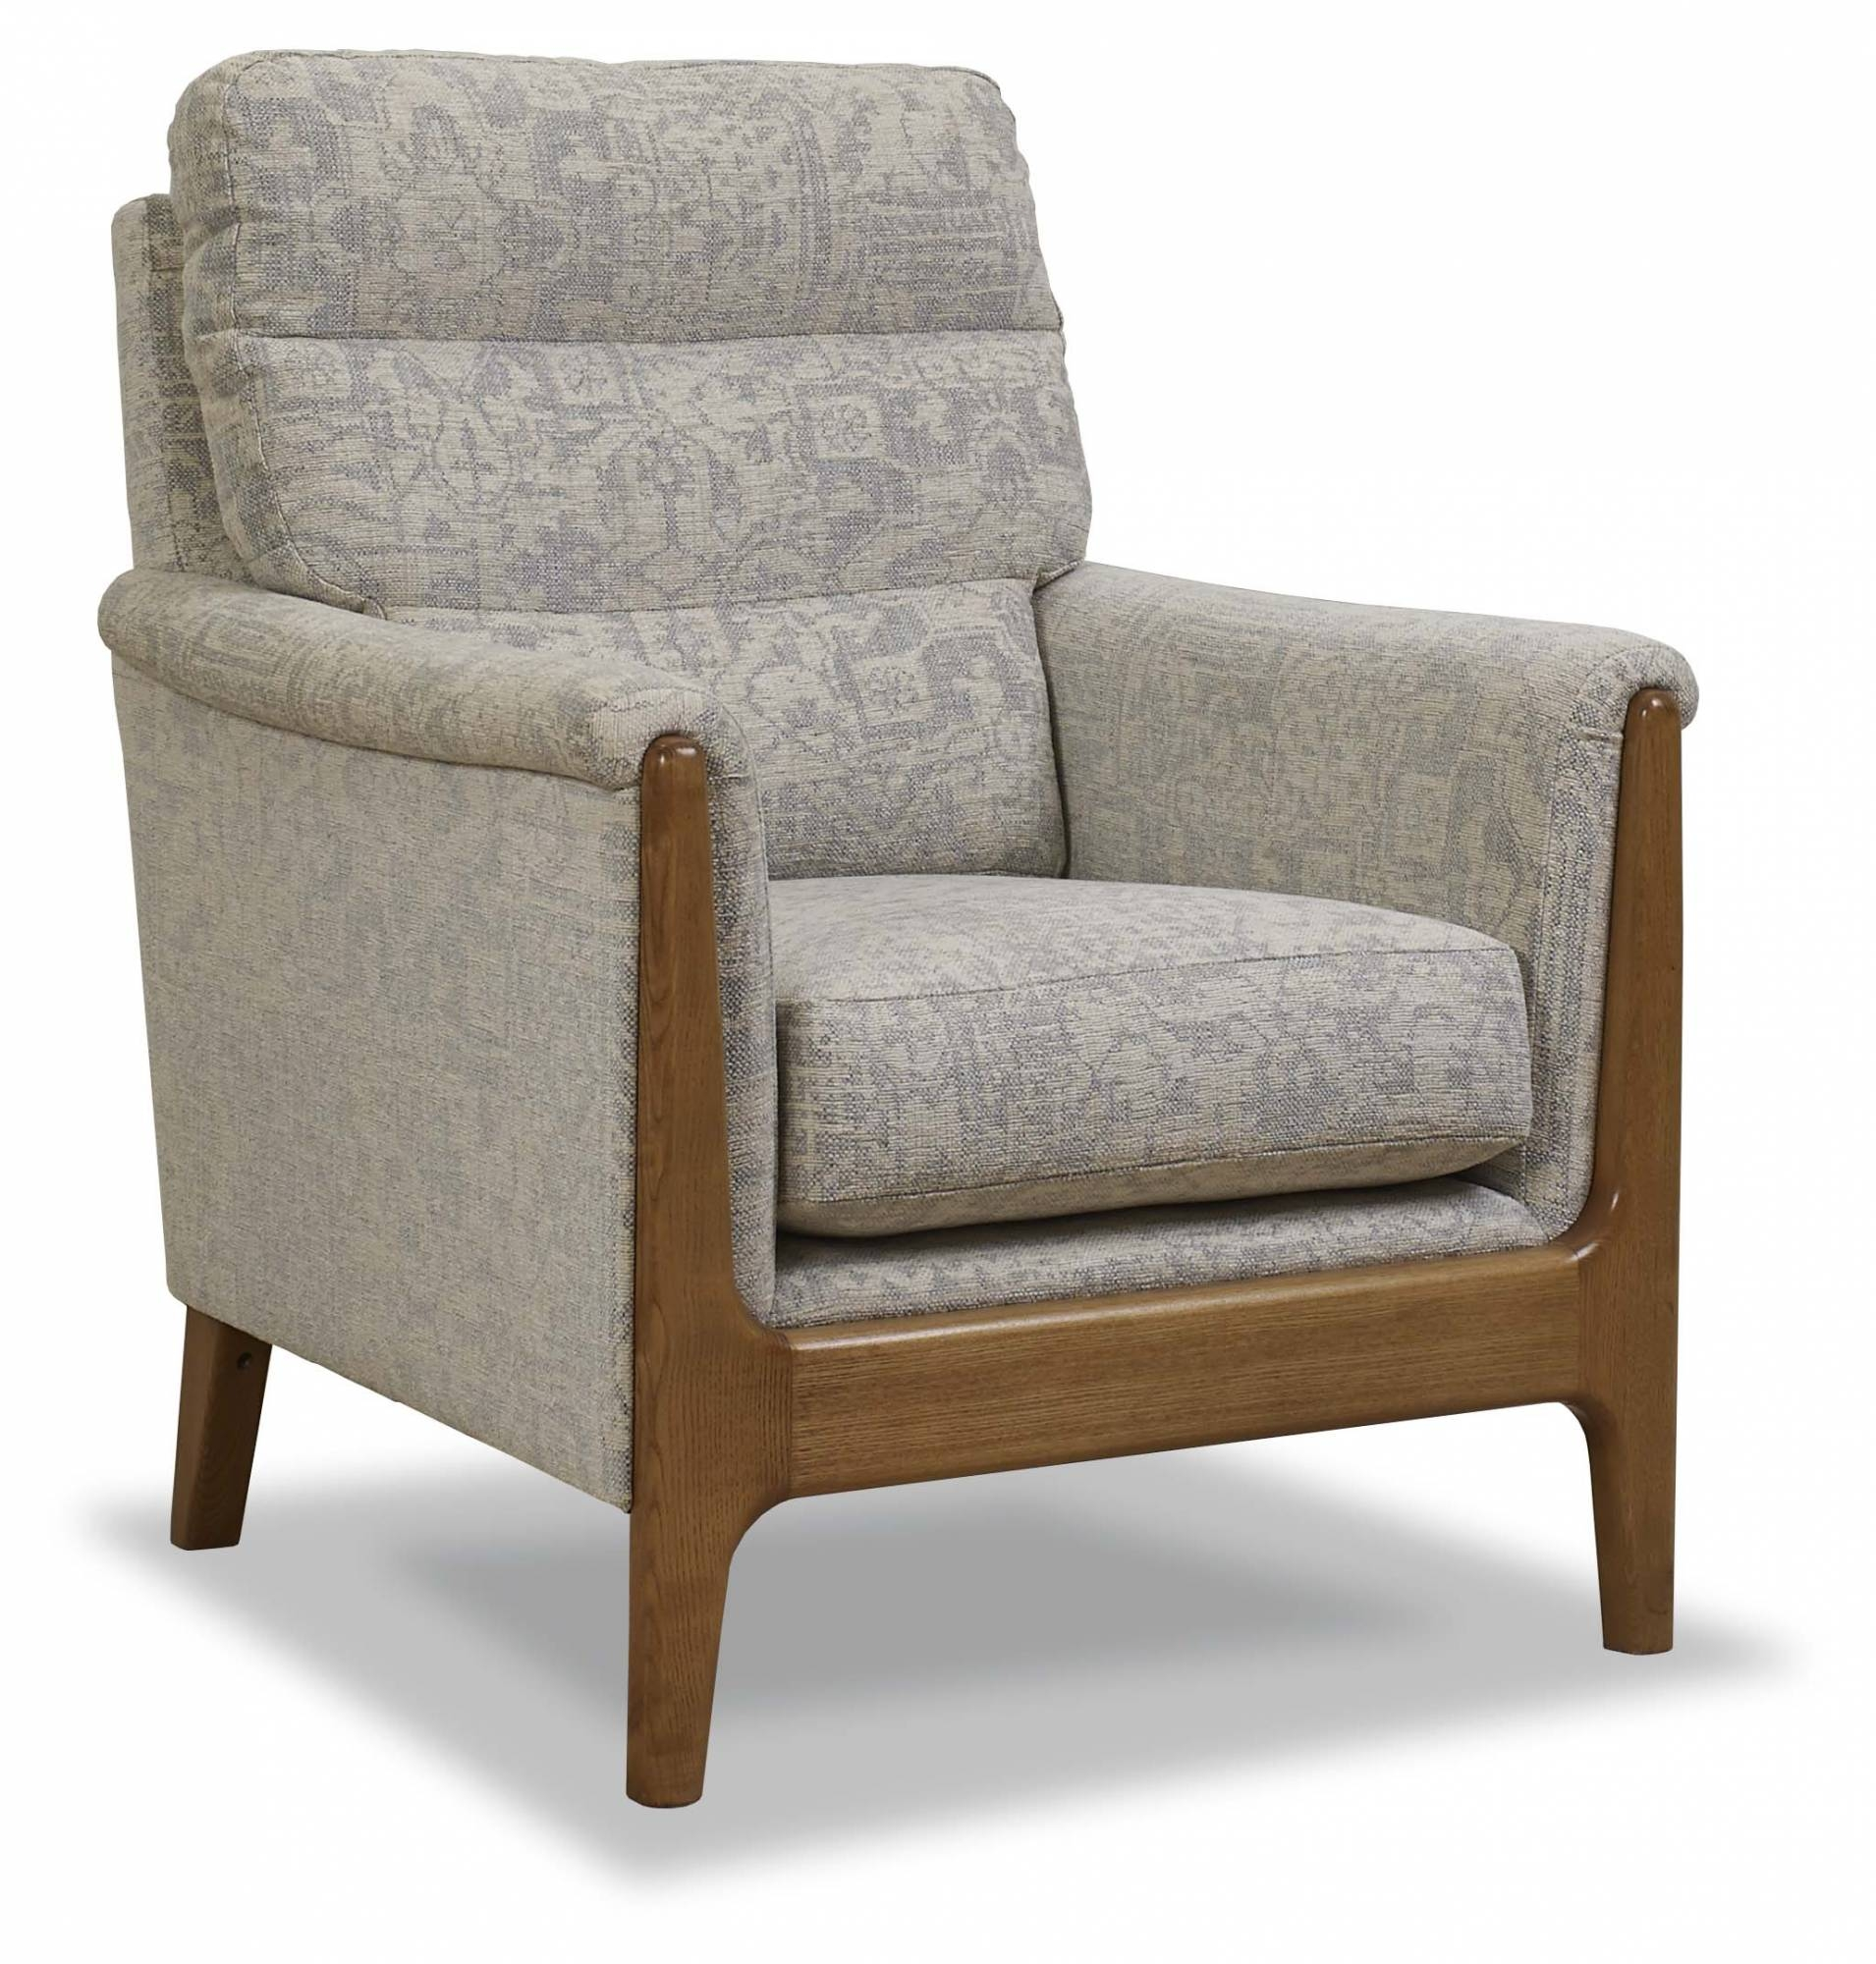 Amazing Premium Cintique Armchairs With Cintique Sofas And Chairs In Kent From Lukehurst (Image 2 of 15)